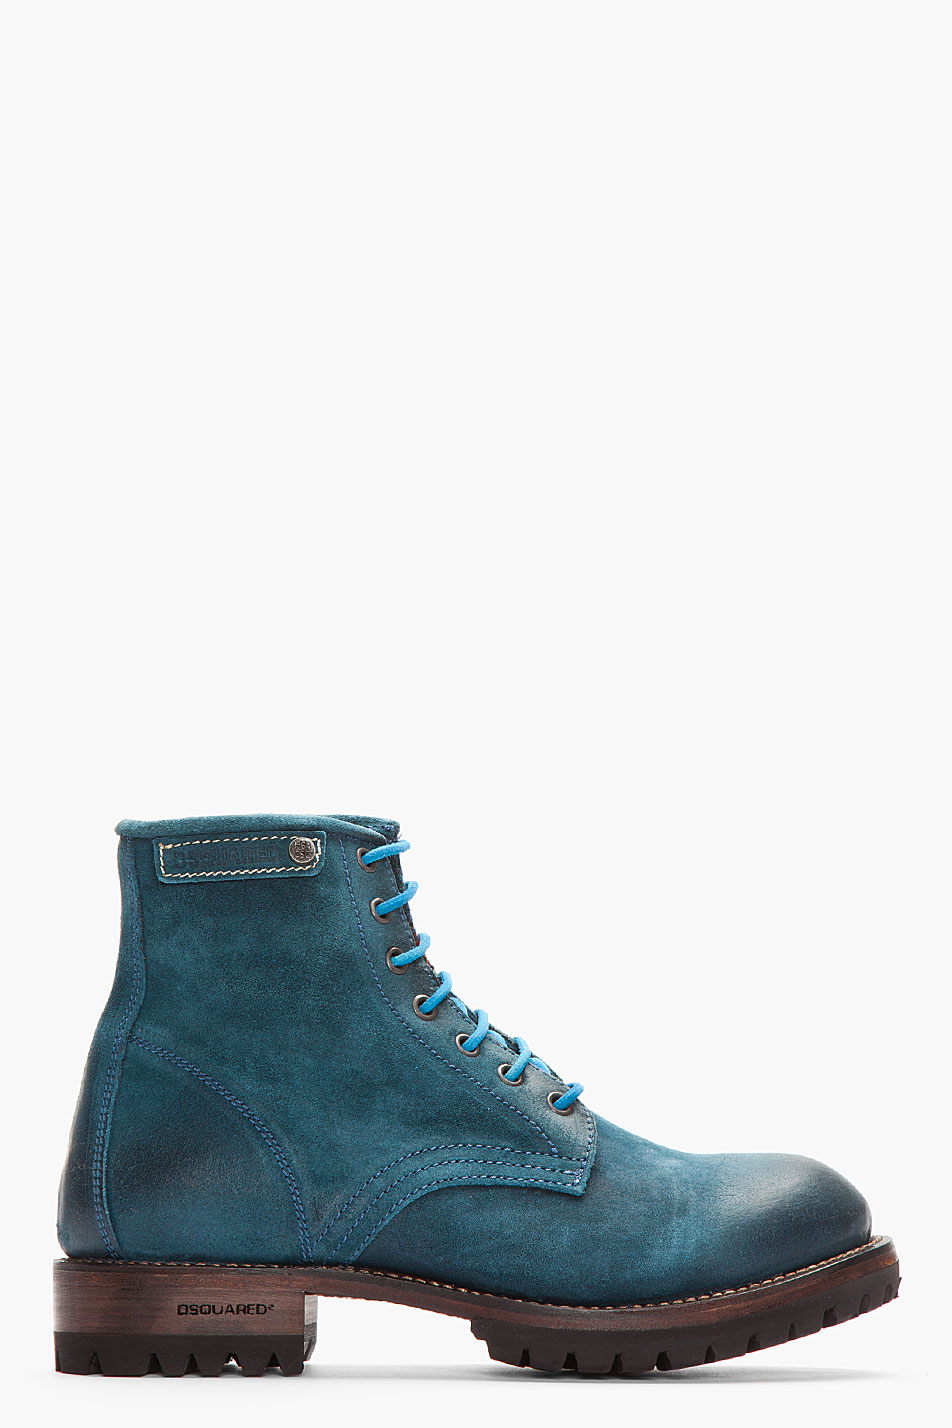 Lyst Dsquared 178 Teal Brushed Leather Hiking Boots In Blue